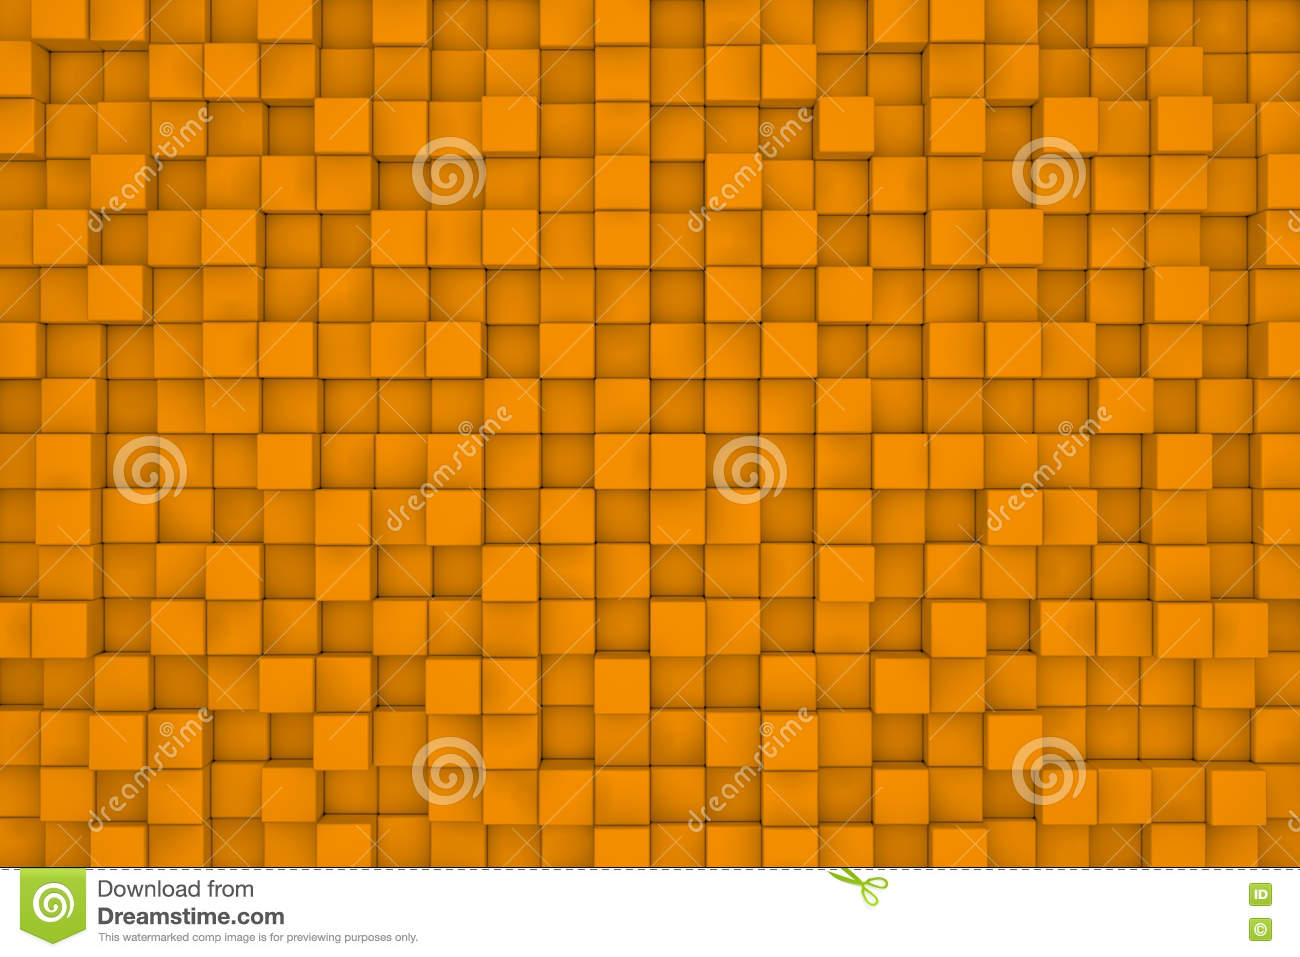 Wall of orange cubes. Abstract background